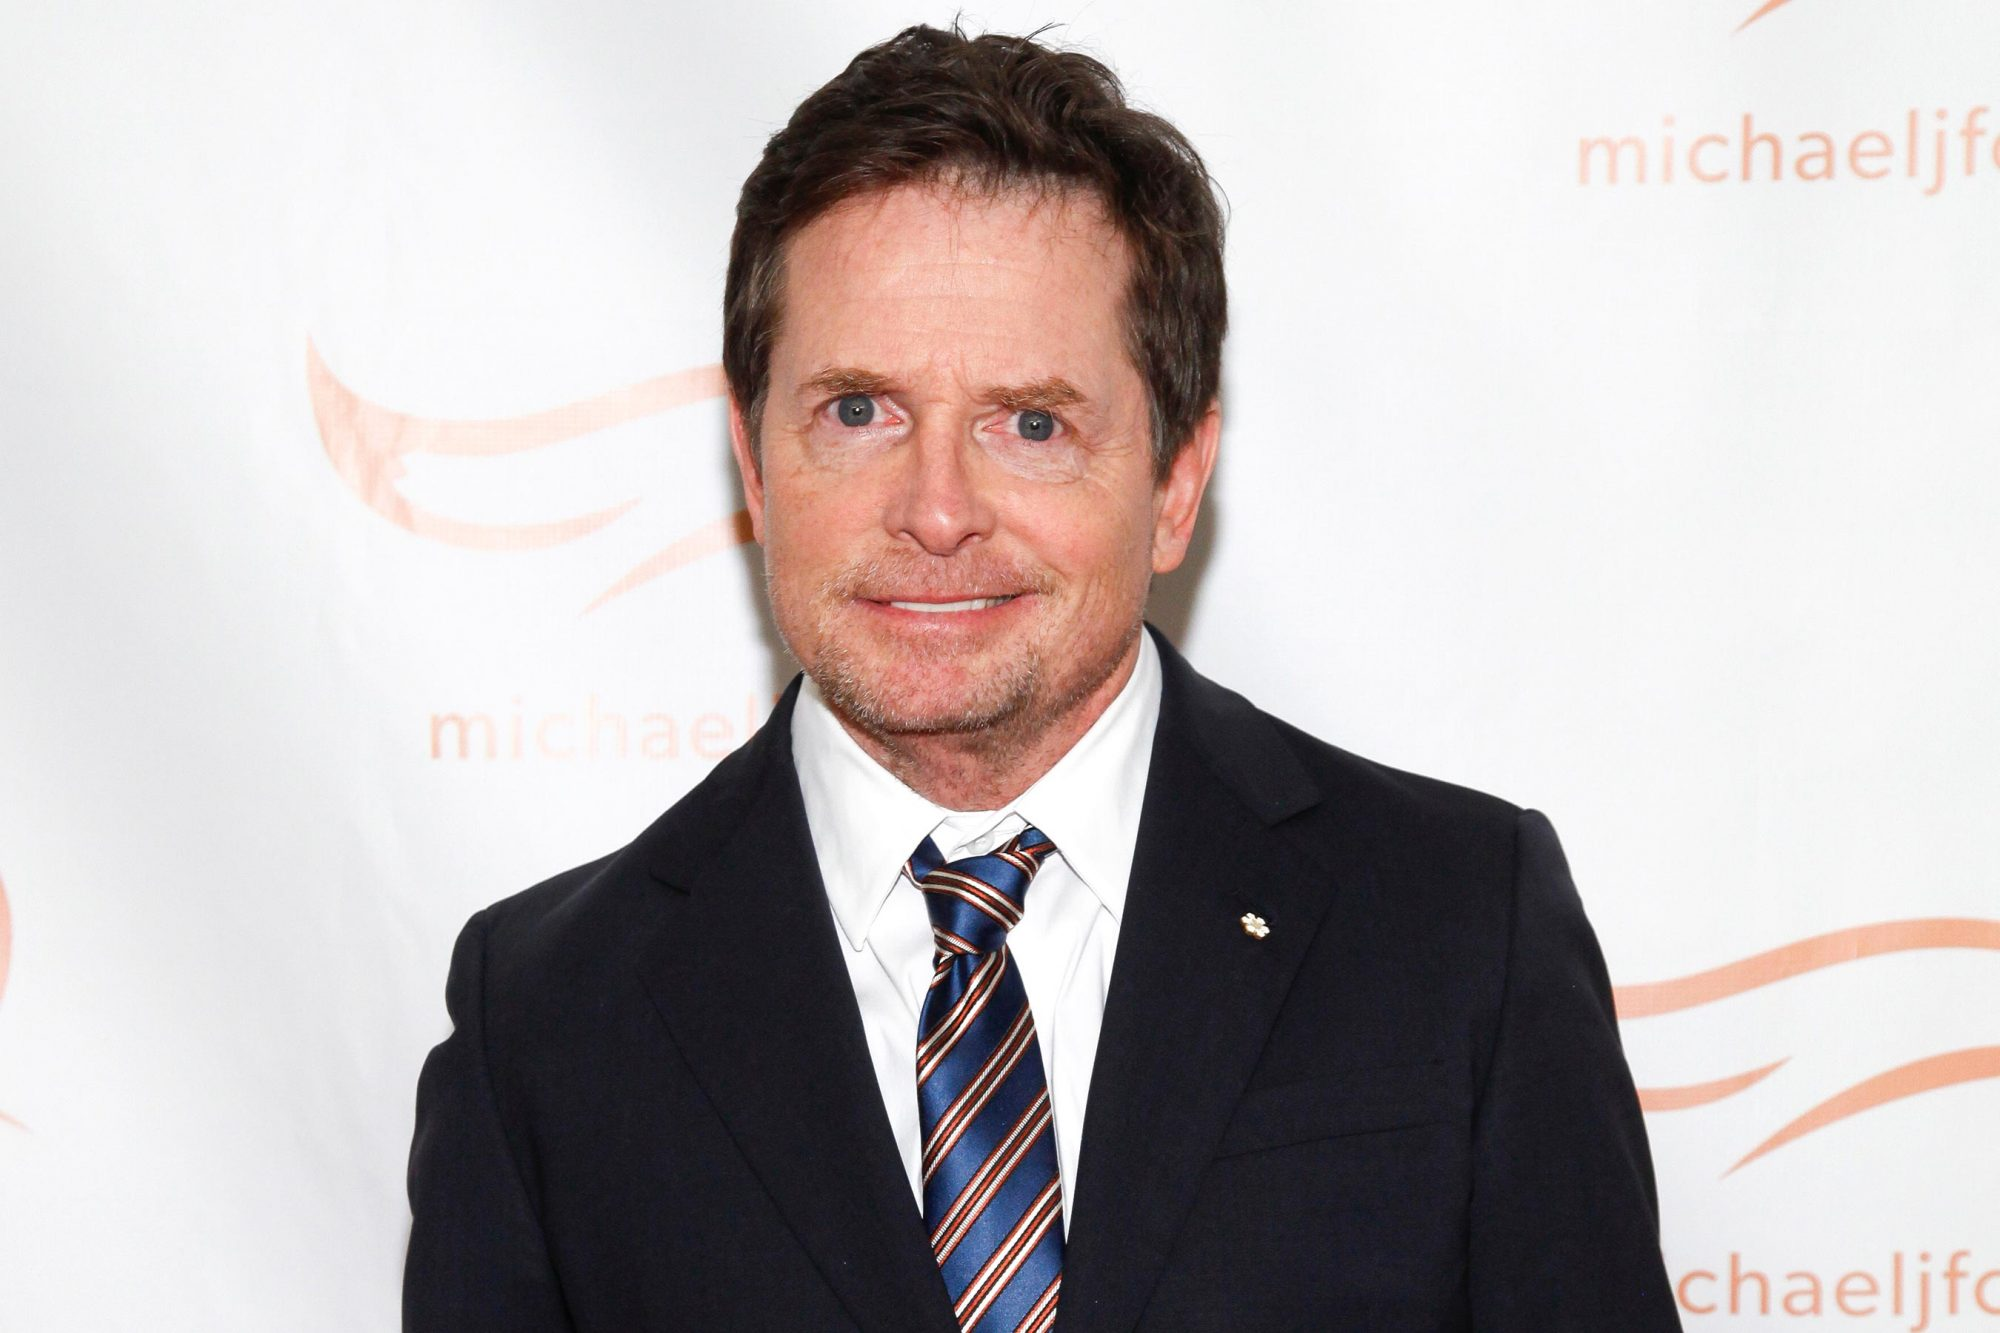 Michael J. Fox Foundation 2018 Benefit Gala, New York, USA - 10 Nov 2018